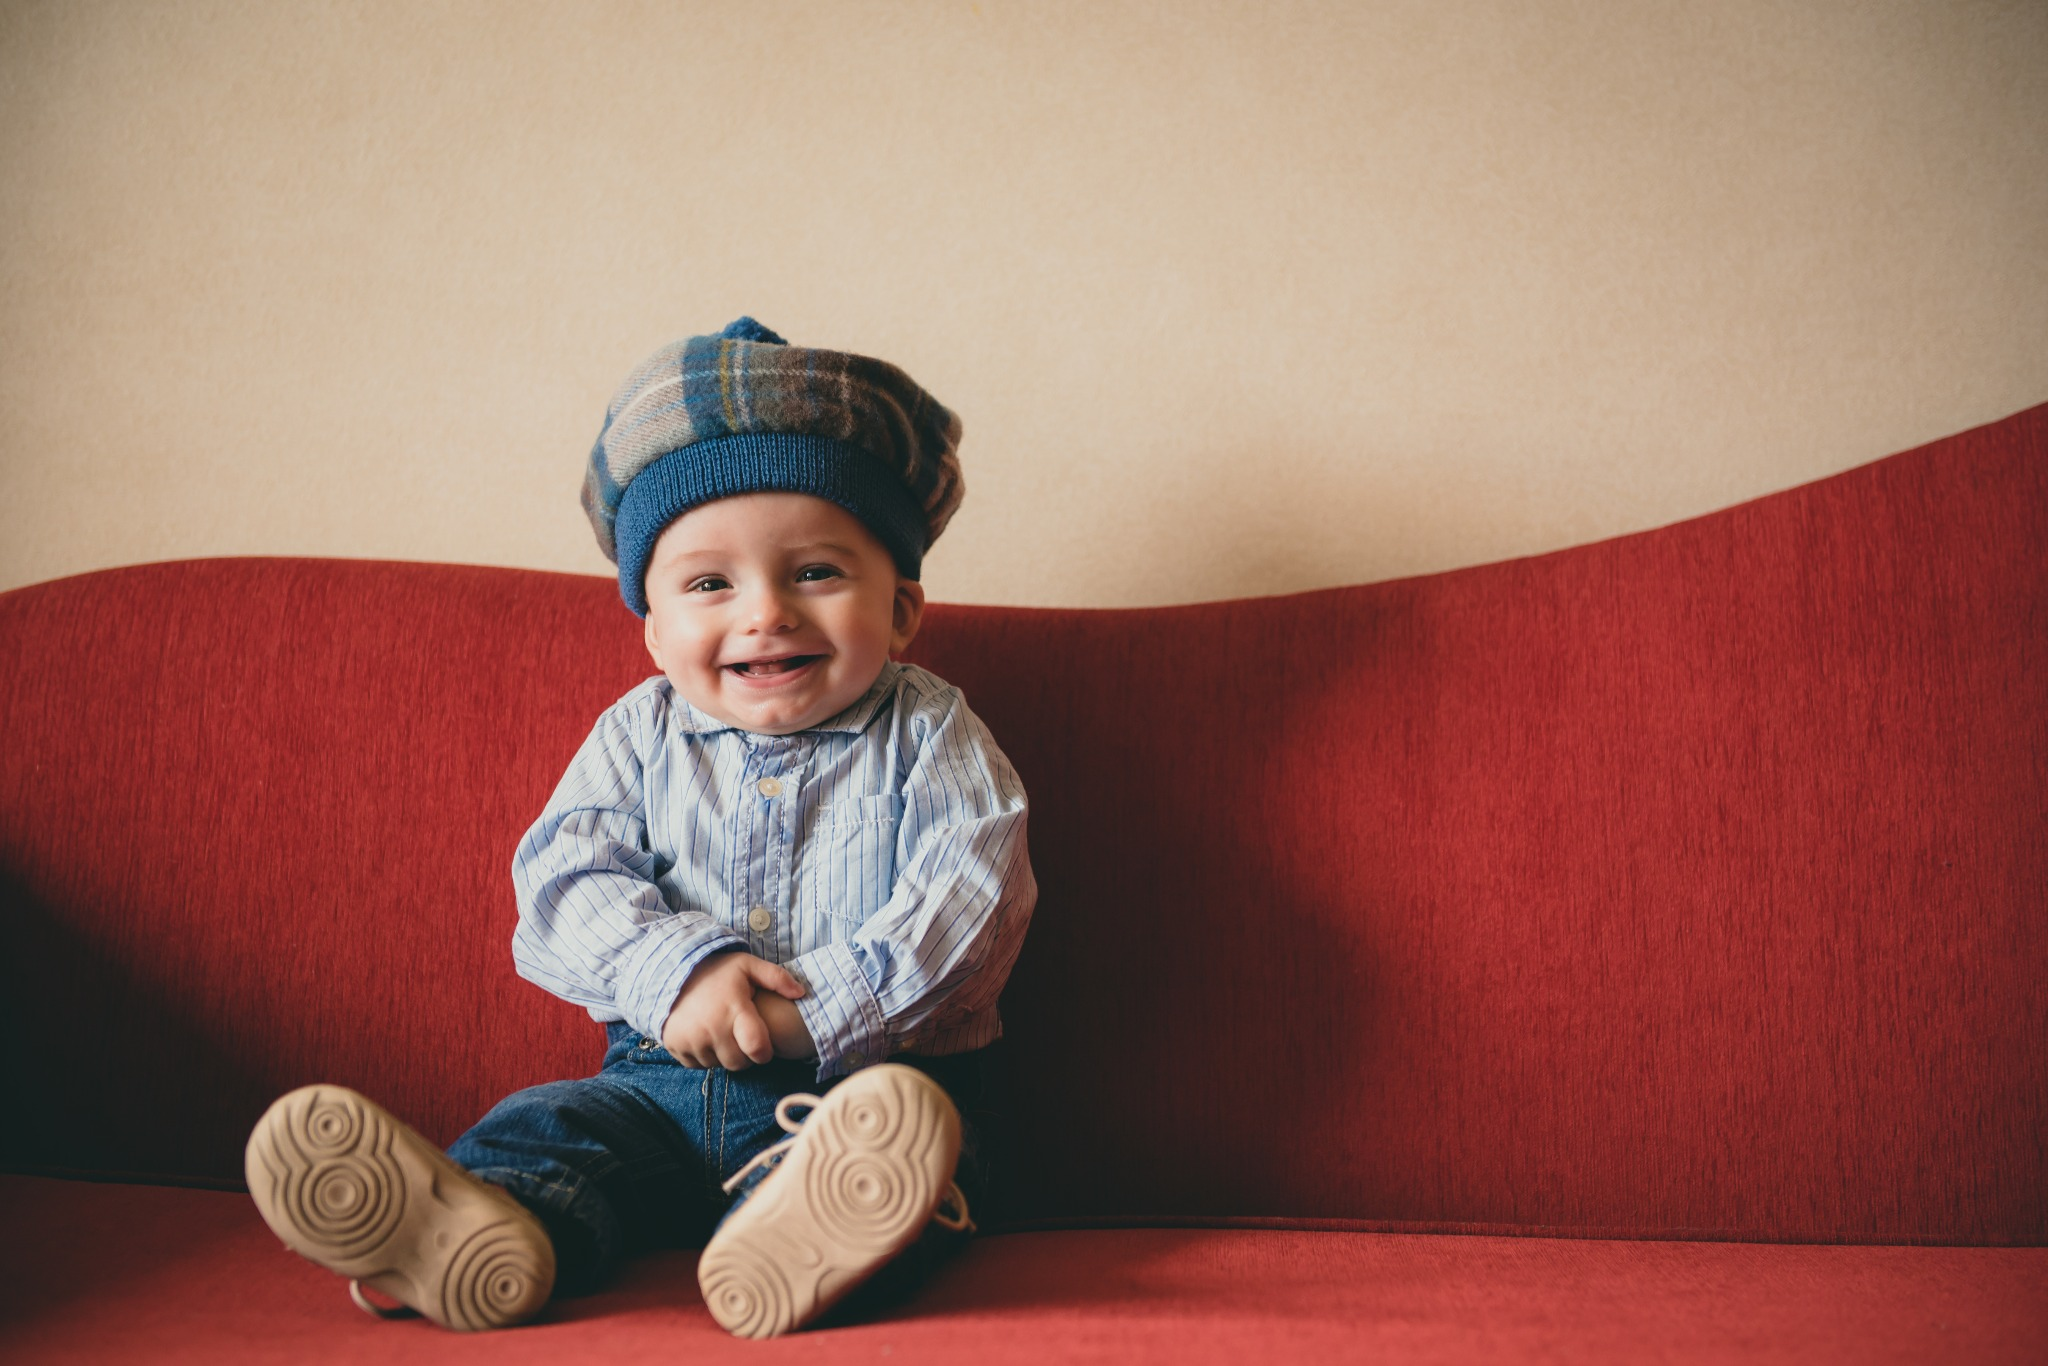 A baby wearing a Scottish tam